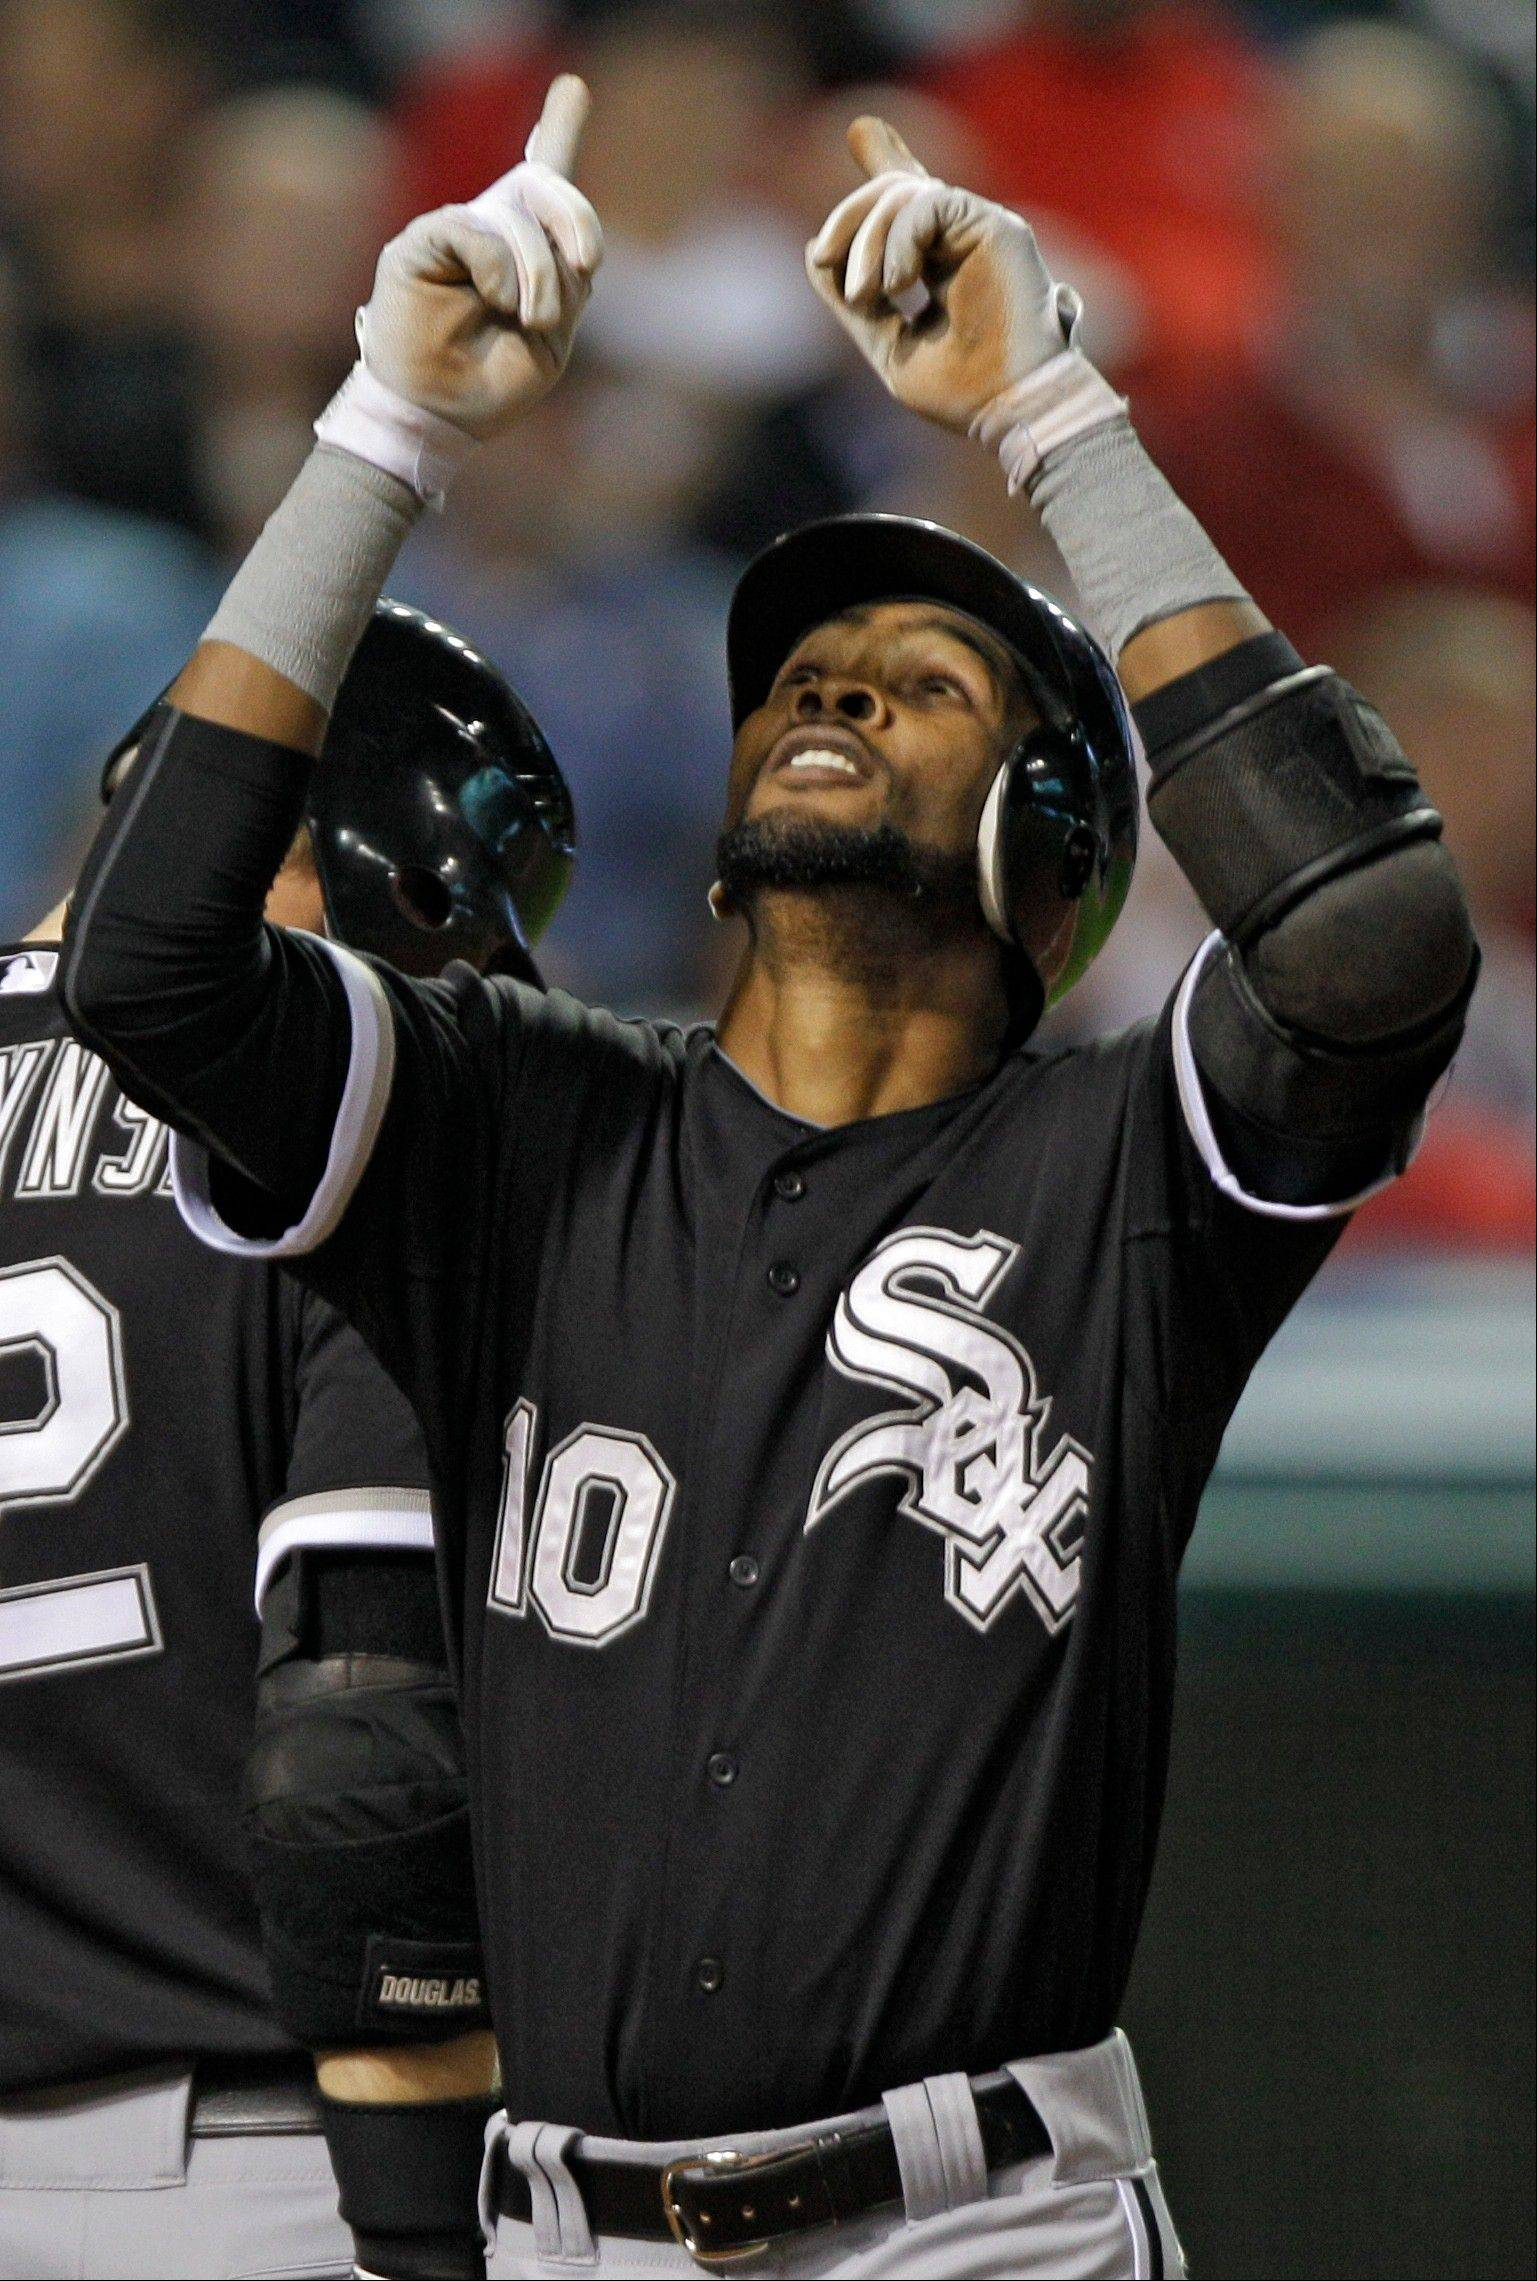 Alexei Ramirez celebrates after his solo home run off Cleveland Indians relief pitcher Chad Durbin in the eighth inning Wednesday.